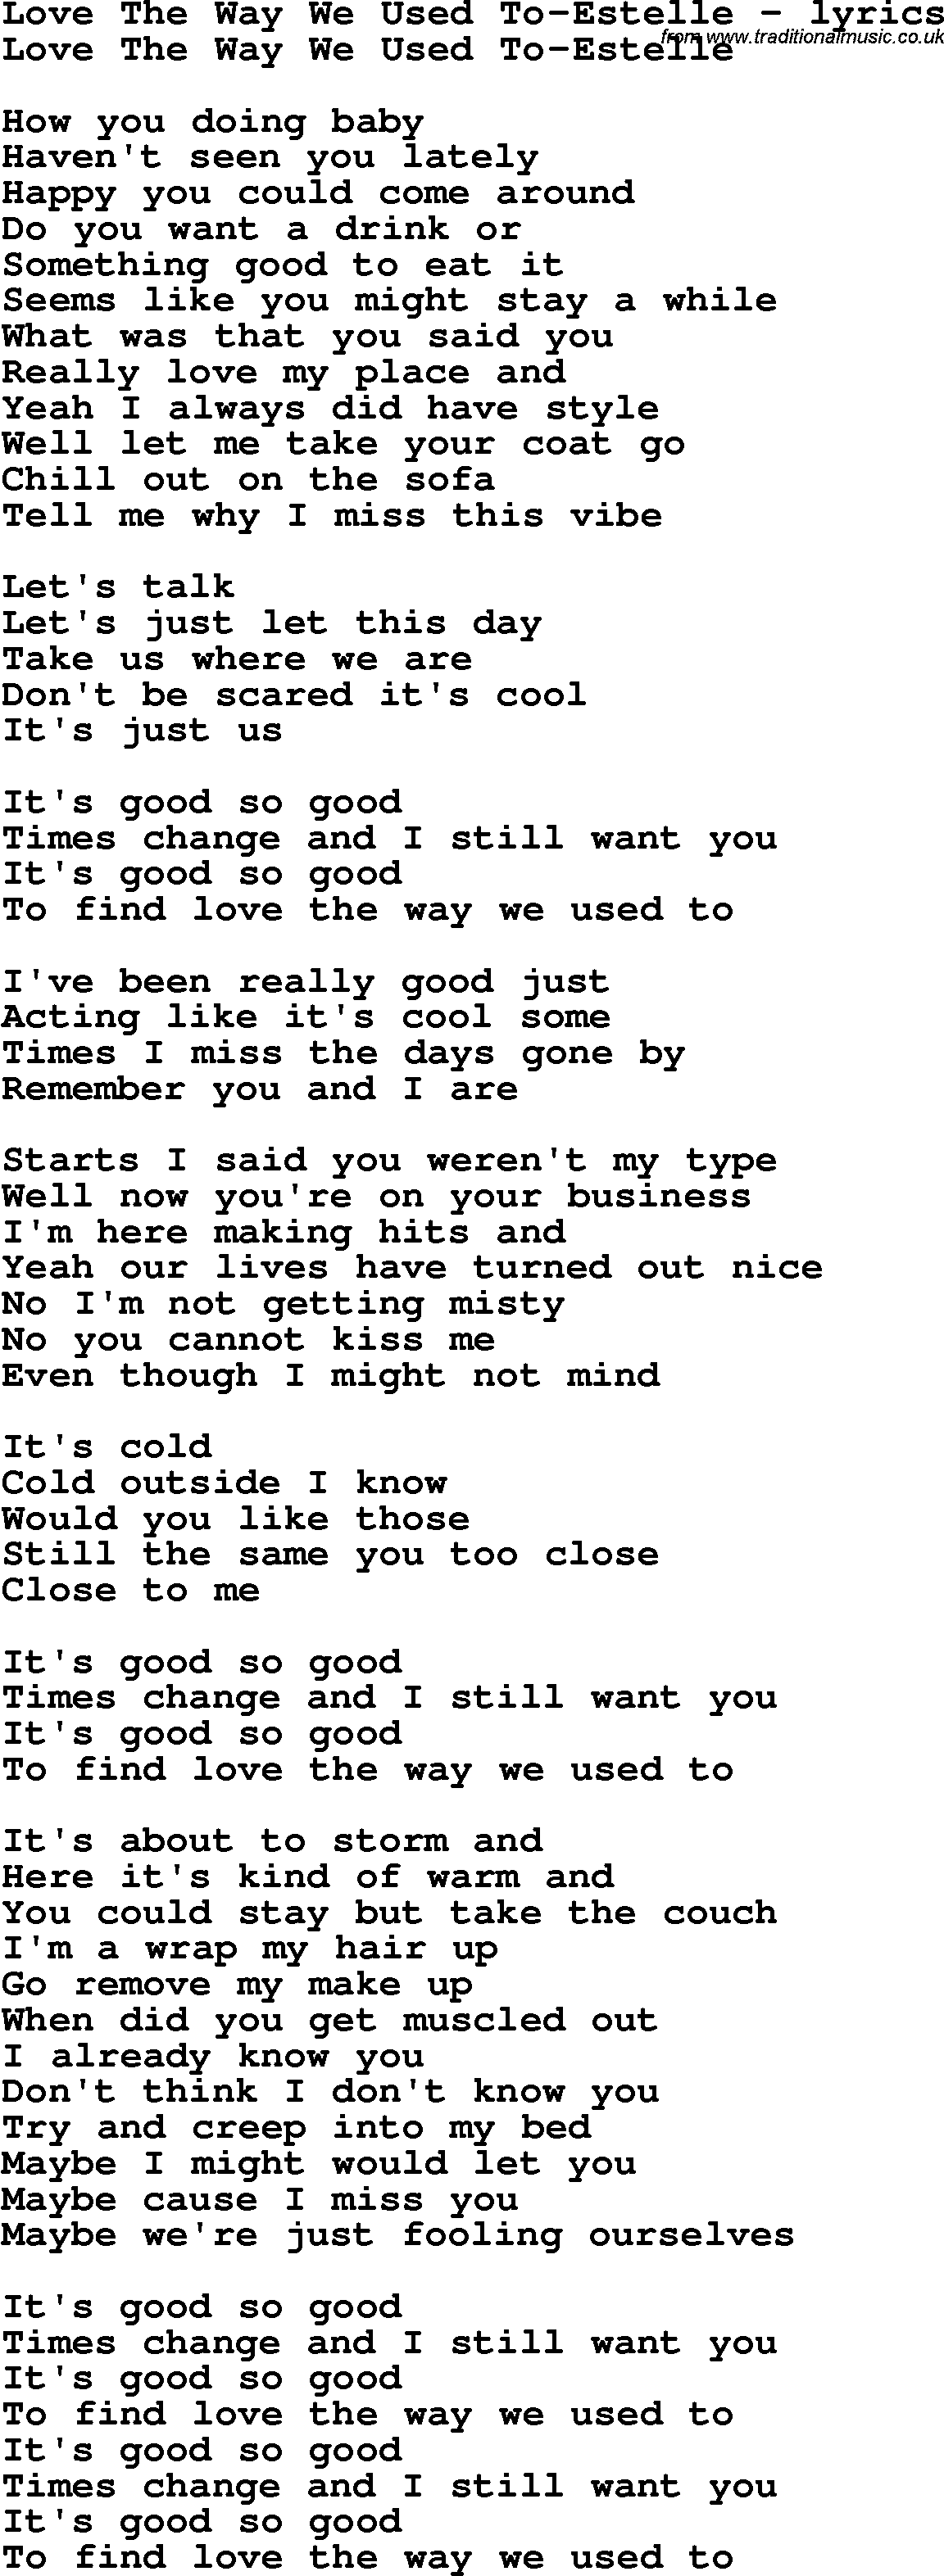 Love Song Lyrics for:Love The Way We Used To-Estelle